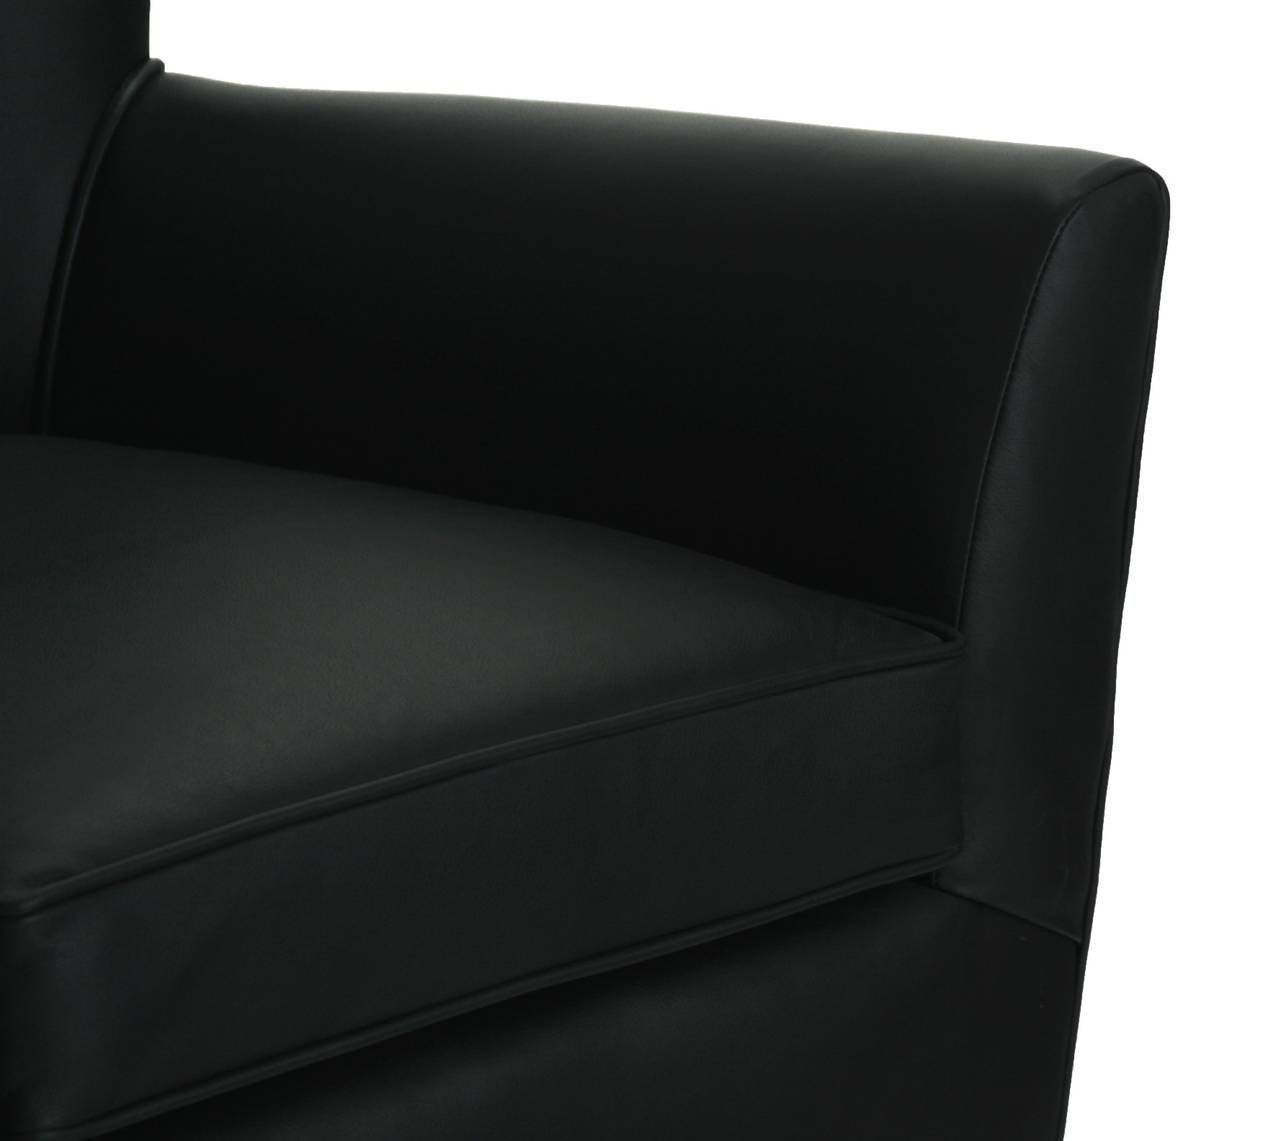 Black Leather Armchair Club Chair with Lathed Wood Legs by Joaquim Tenreiro For Sale 1